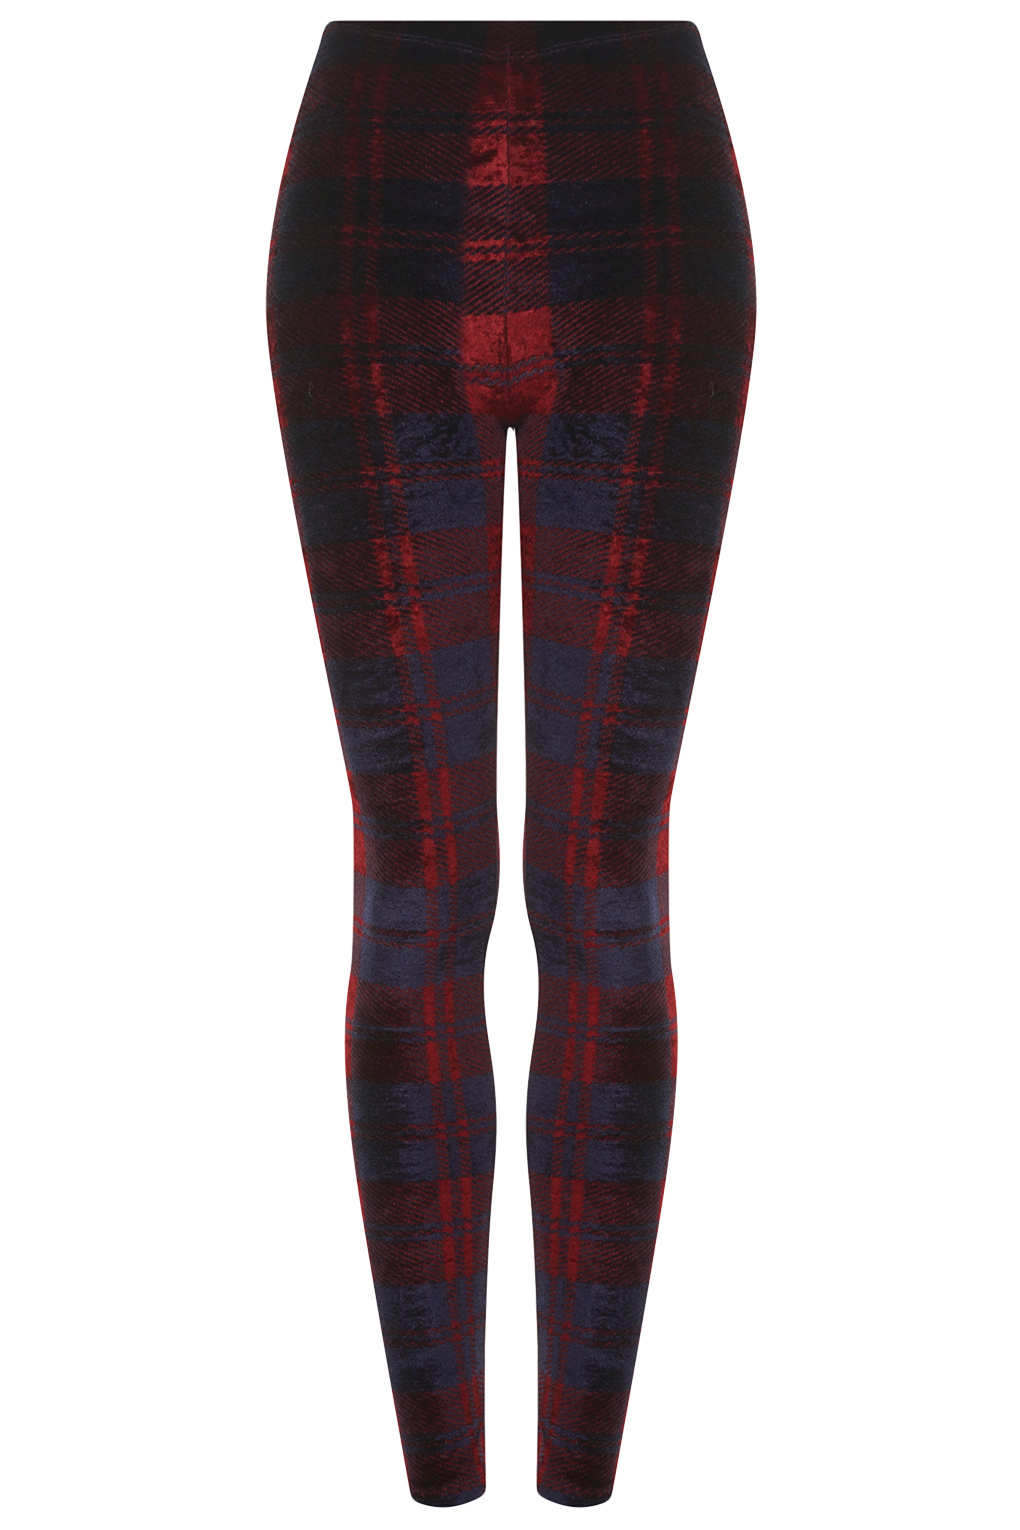 # Red Hot. These blood red velvet leggings are a must buy, pair them up with a simple sweater and you are all set with the sophisticated look. Source # Velvet Leggings for School or College. This olive green is just the right touch of color that is needed to add some oomph to your wardrobe.